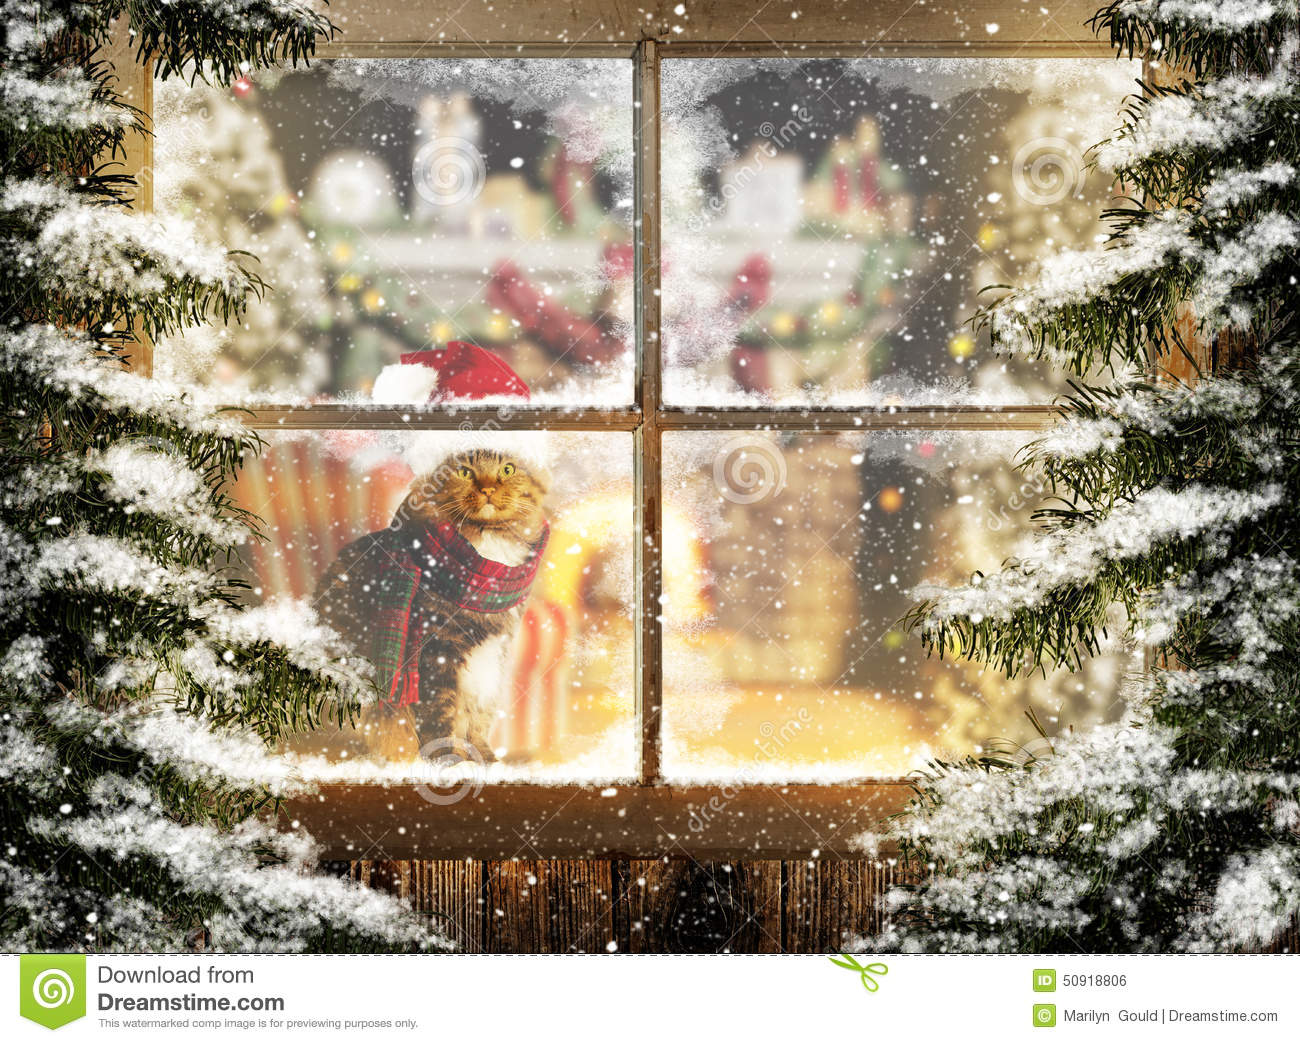 Download Christmas Cat Sitting At Window Stock Photo - Image of feline, marilyn: 50918806